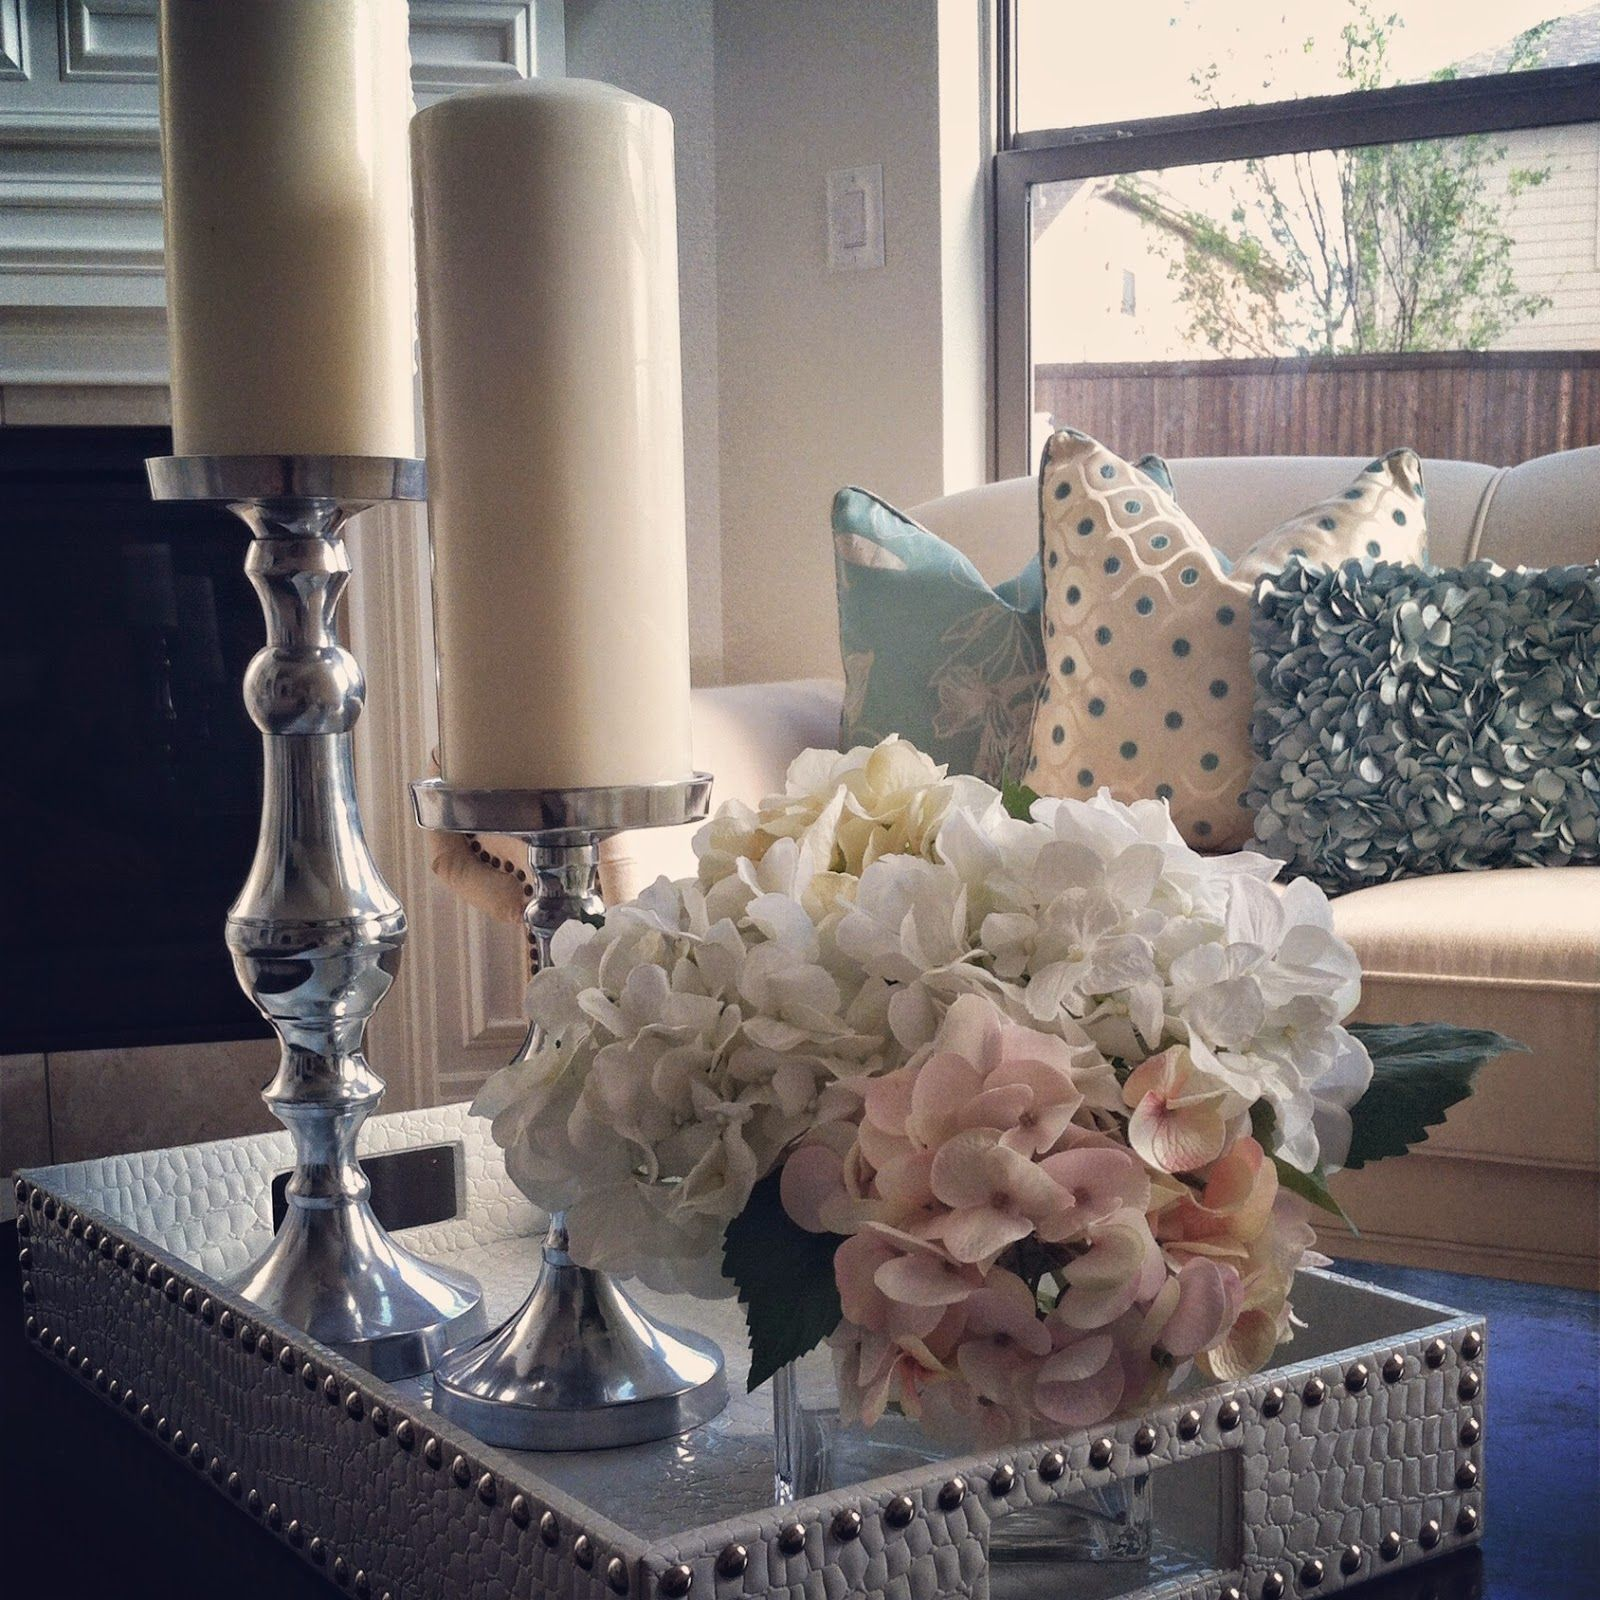 Nissa lynn interiors my coffee table decor in the morning nissa lynn interiors my coffee table decor in the morning sunlight nissalynninteriors geotapseo Gallery